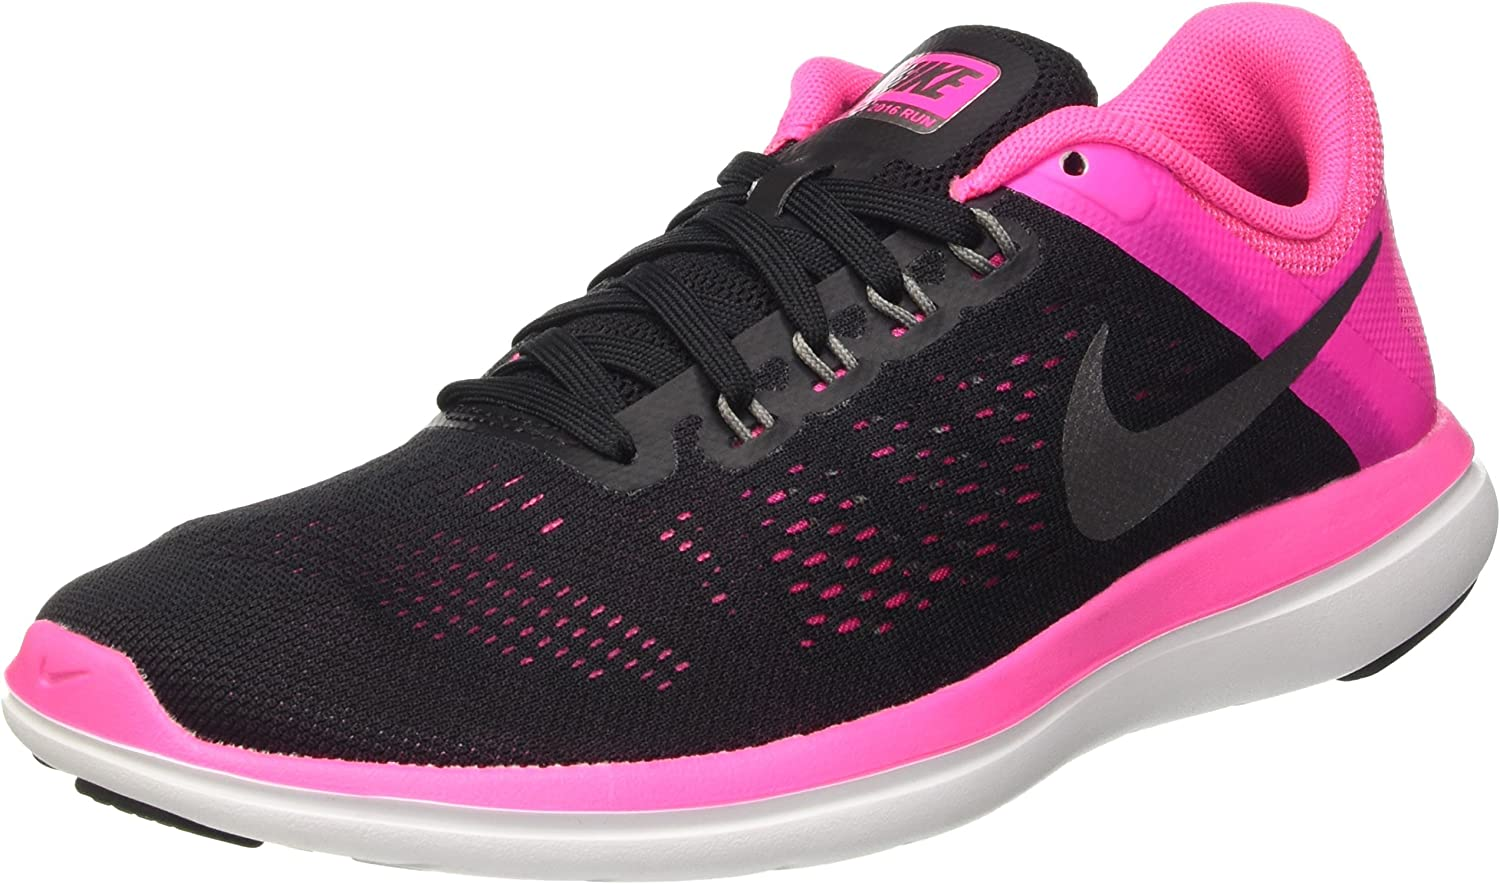 Sucio muñeca transmisión  Amazon.com | NIKE Women's Flex 2016 Rn Running Shoes | Road Running